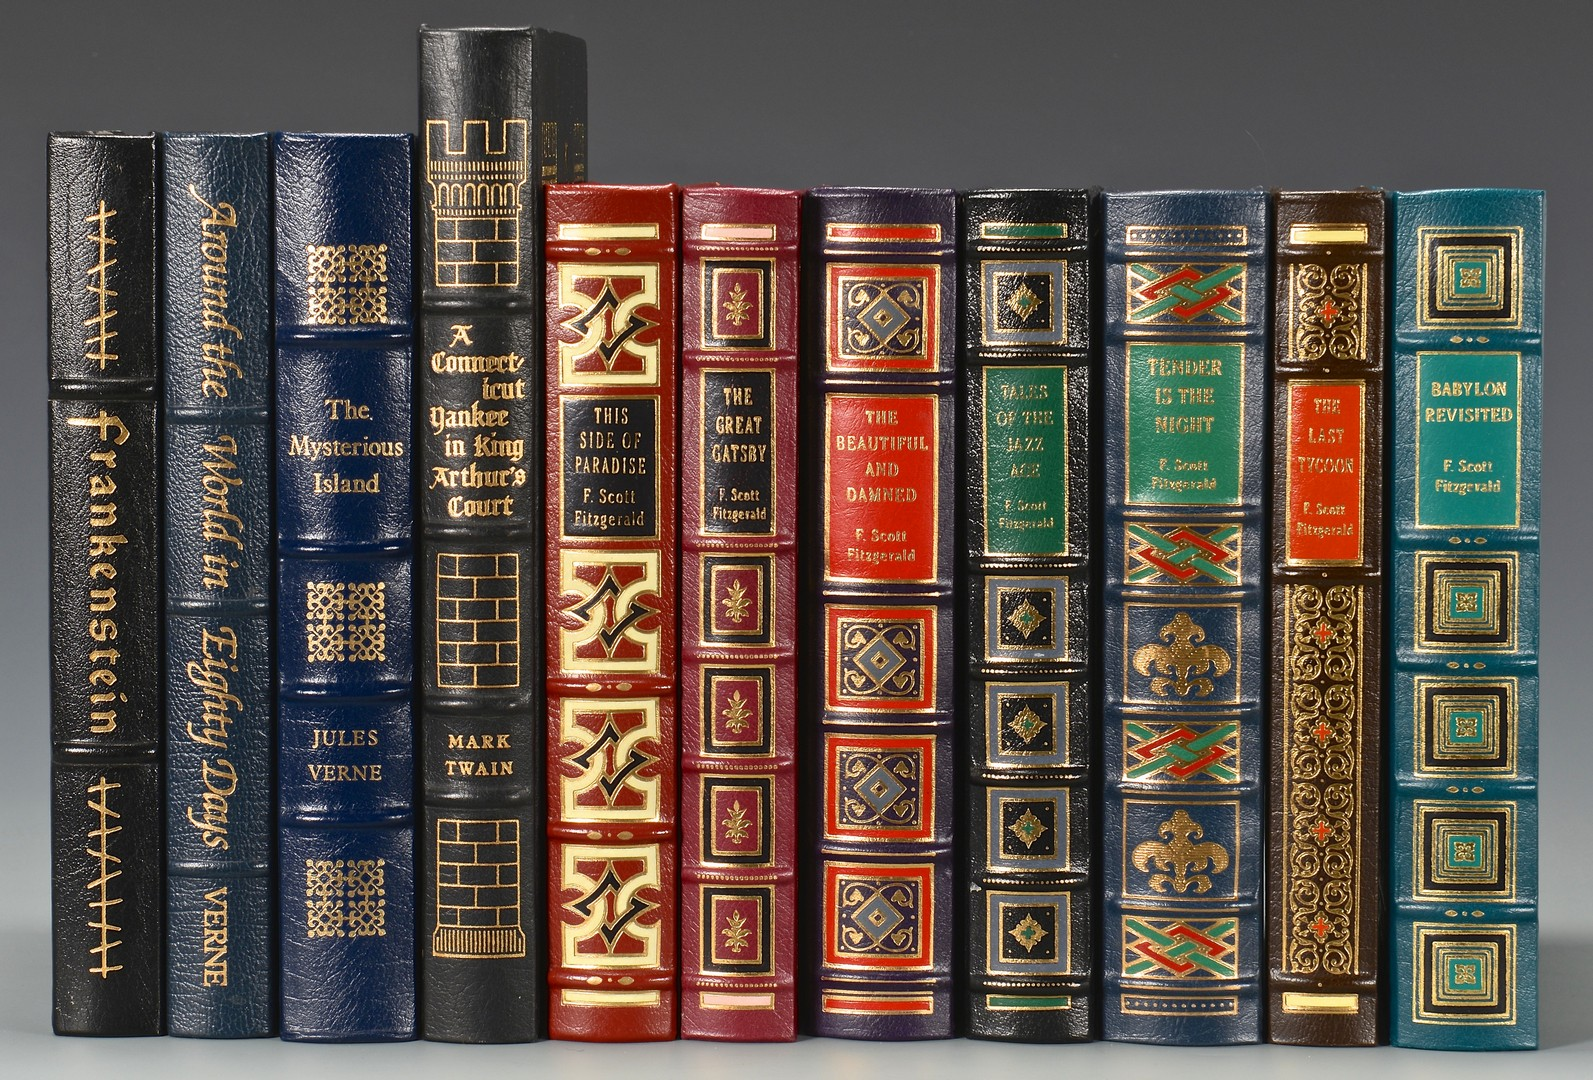 Lot 739: 11 Easton Press Books, including Great Gatsby